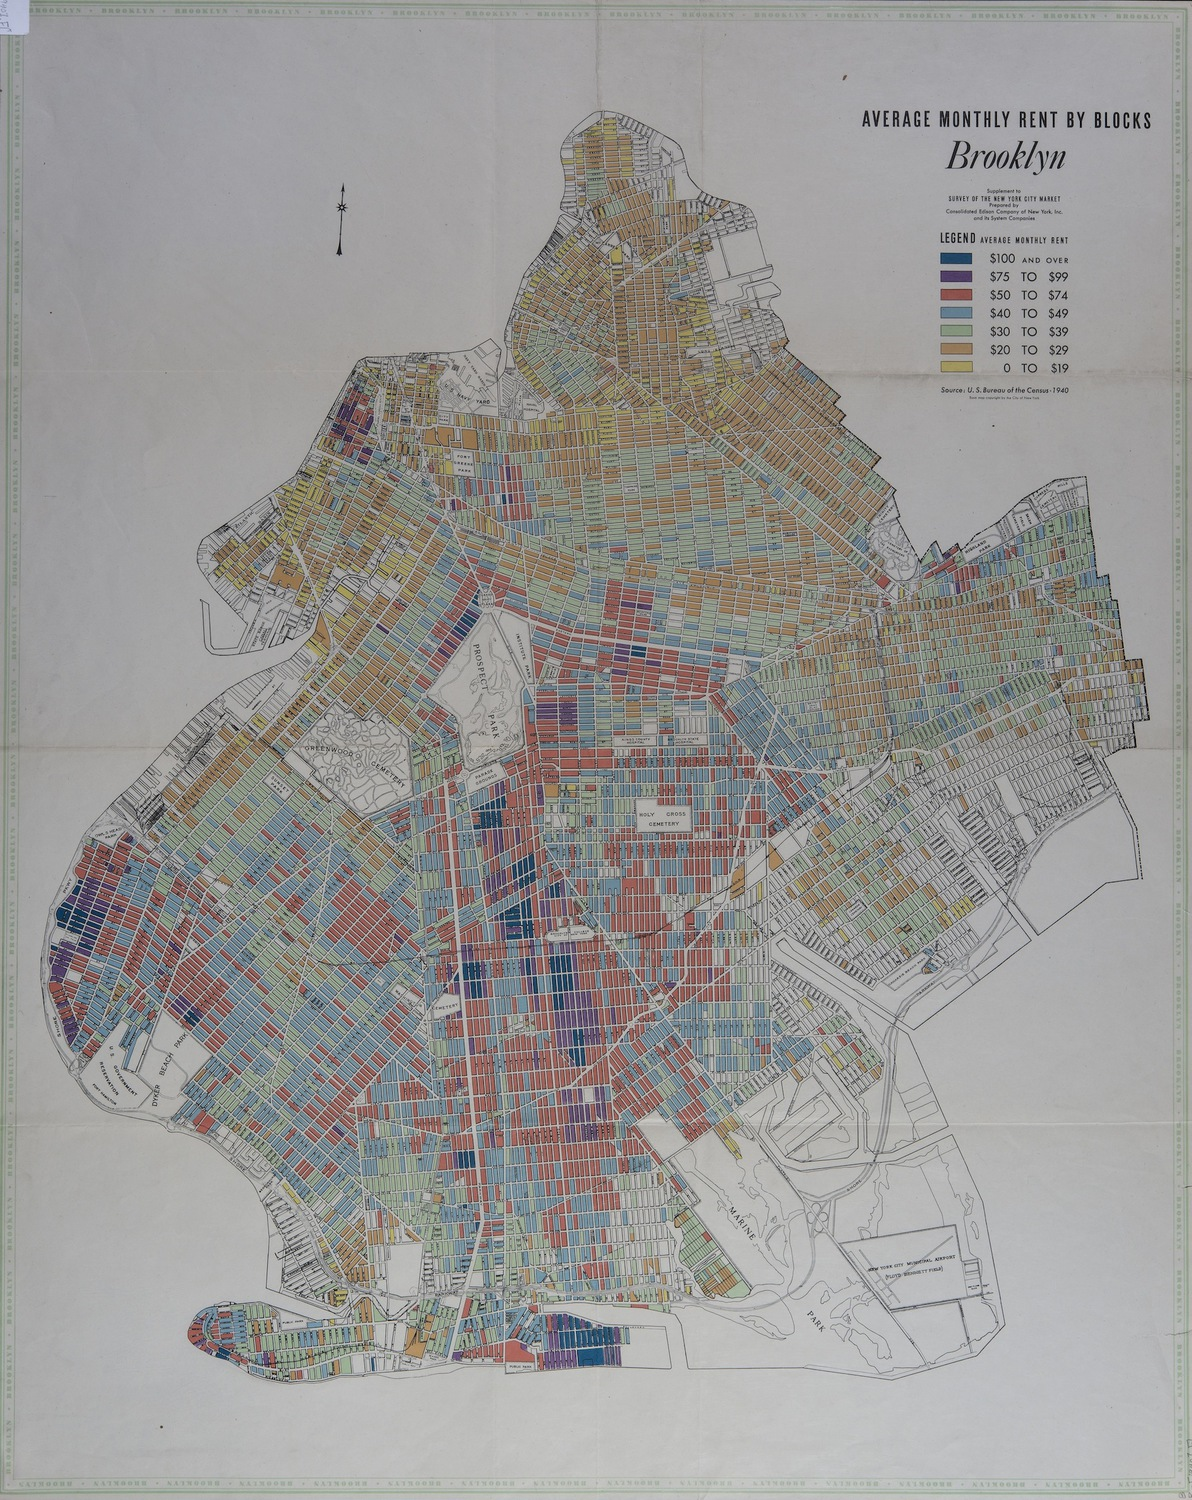 Average Monthly Rent By Blocks, Brooklyn, 1940